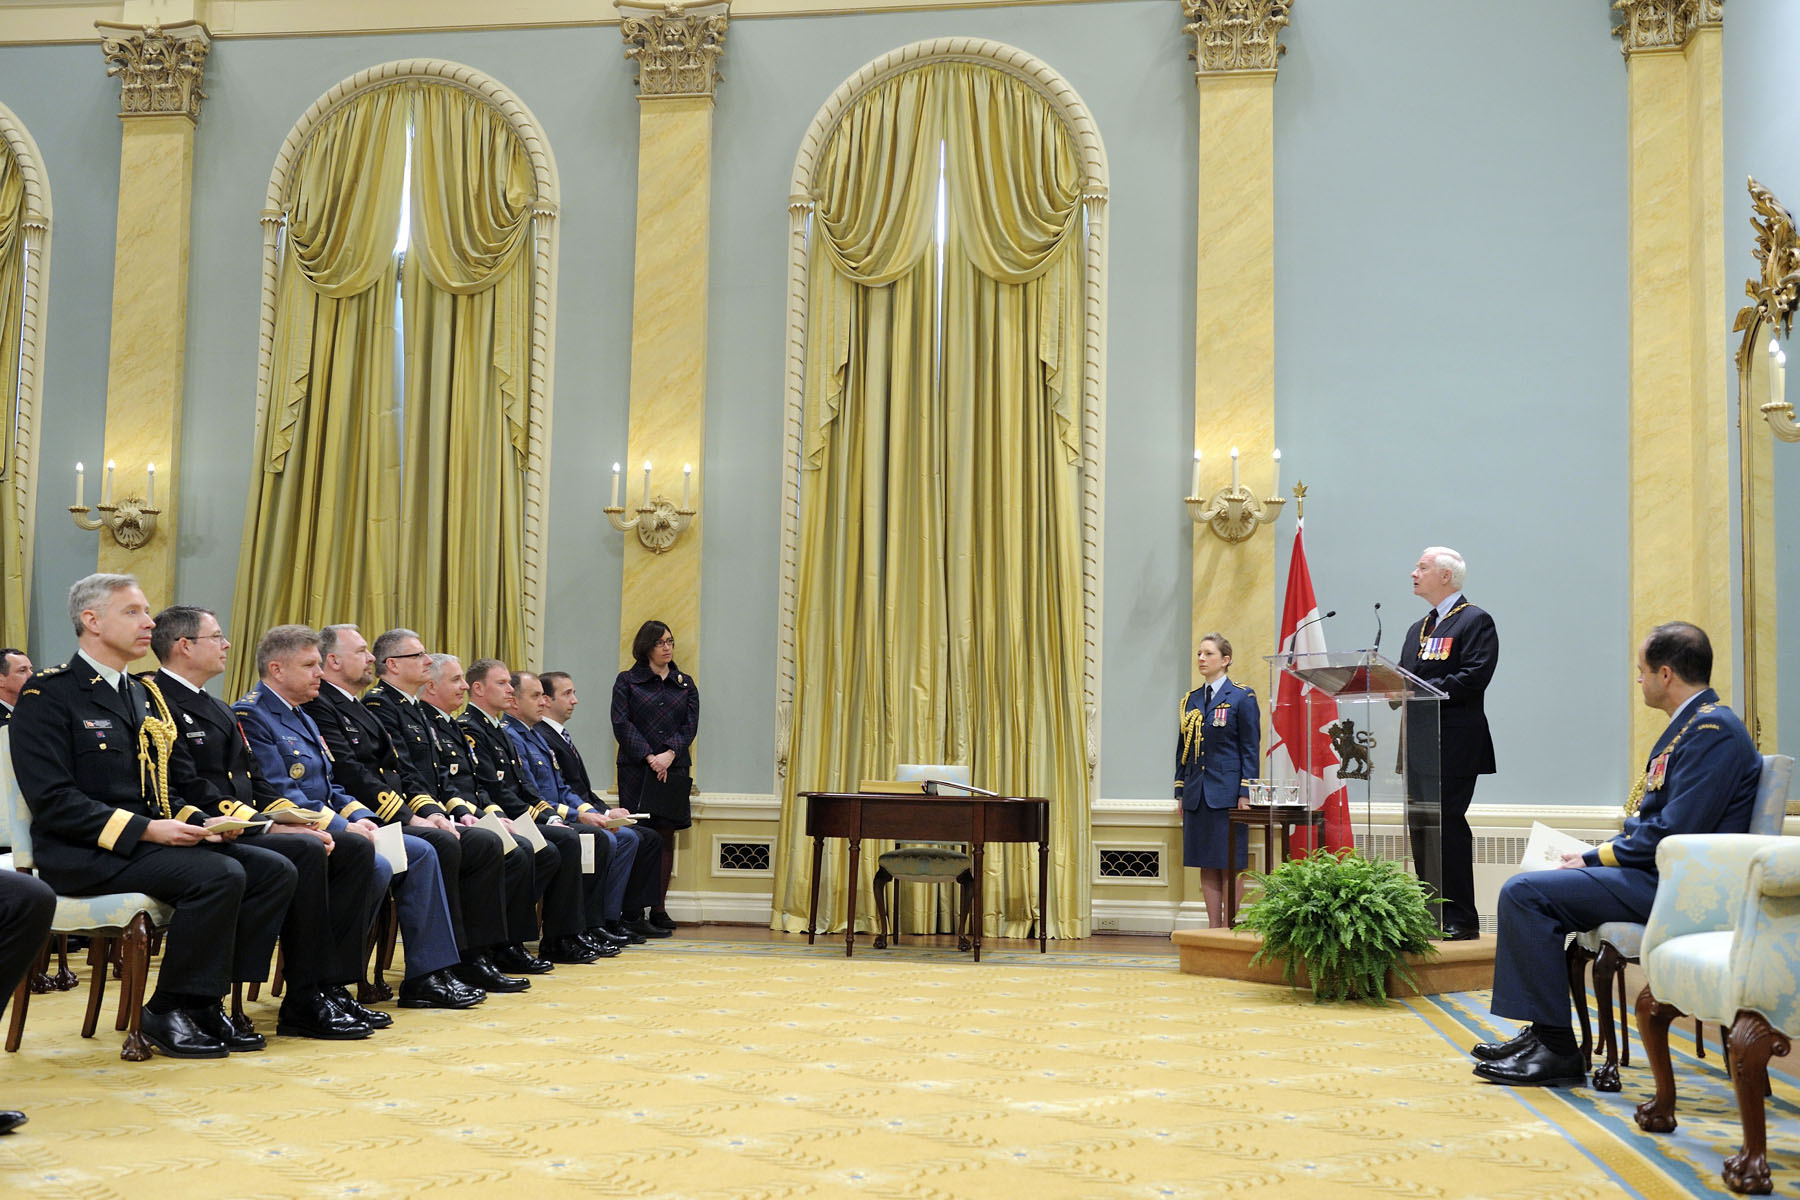 """As chancellor of the Order of Military Merit, I am honoured to recognize your outstanding service to our country,"" said His Excellency. ""That applies to those of you who are being named Commanders, Officers and Members of the Order, and also to your loved ones, who offer such valuable support and encouragement."""